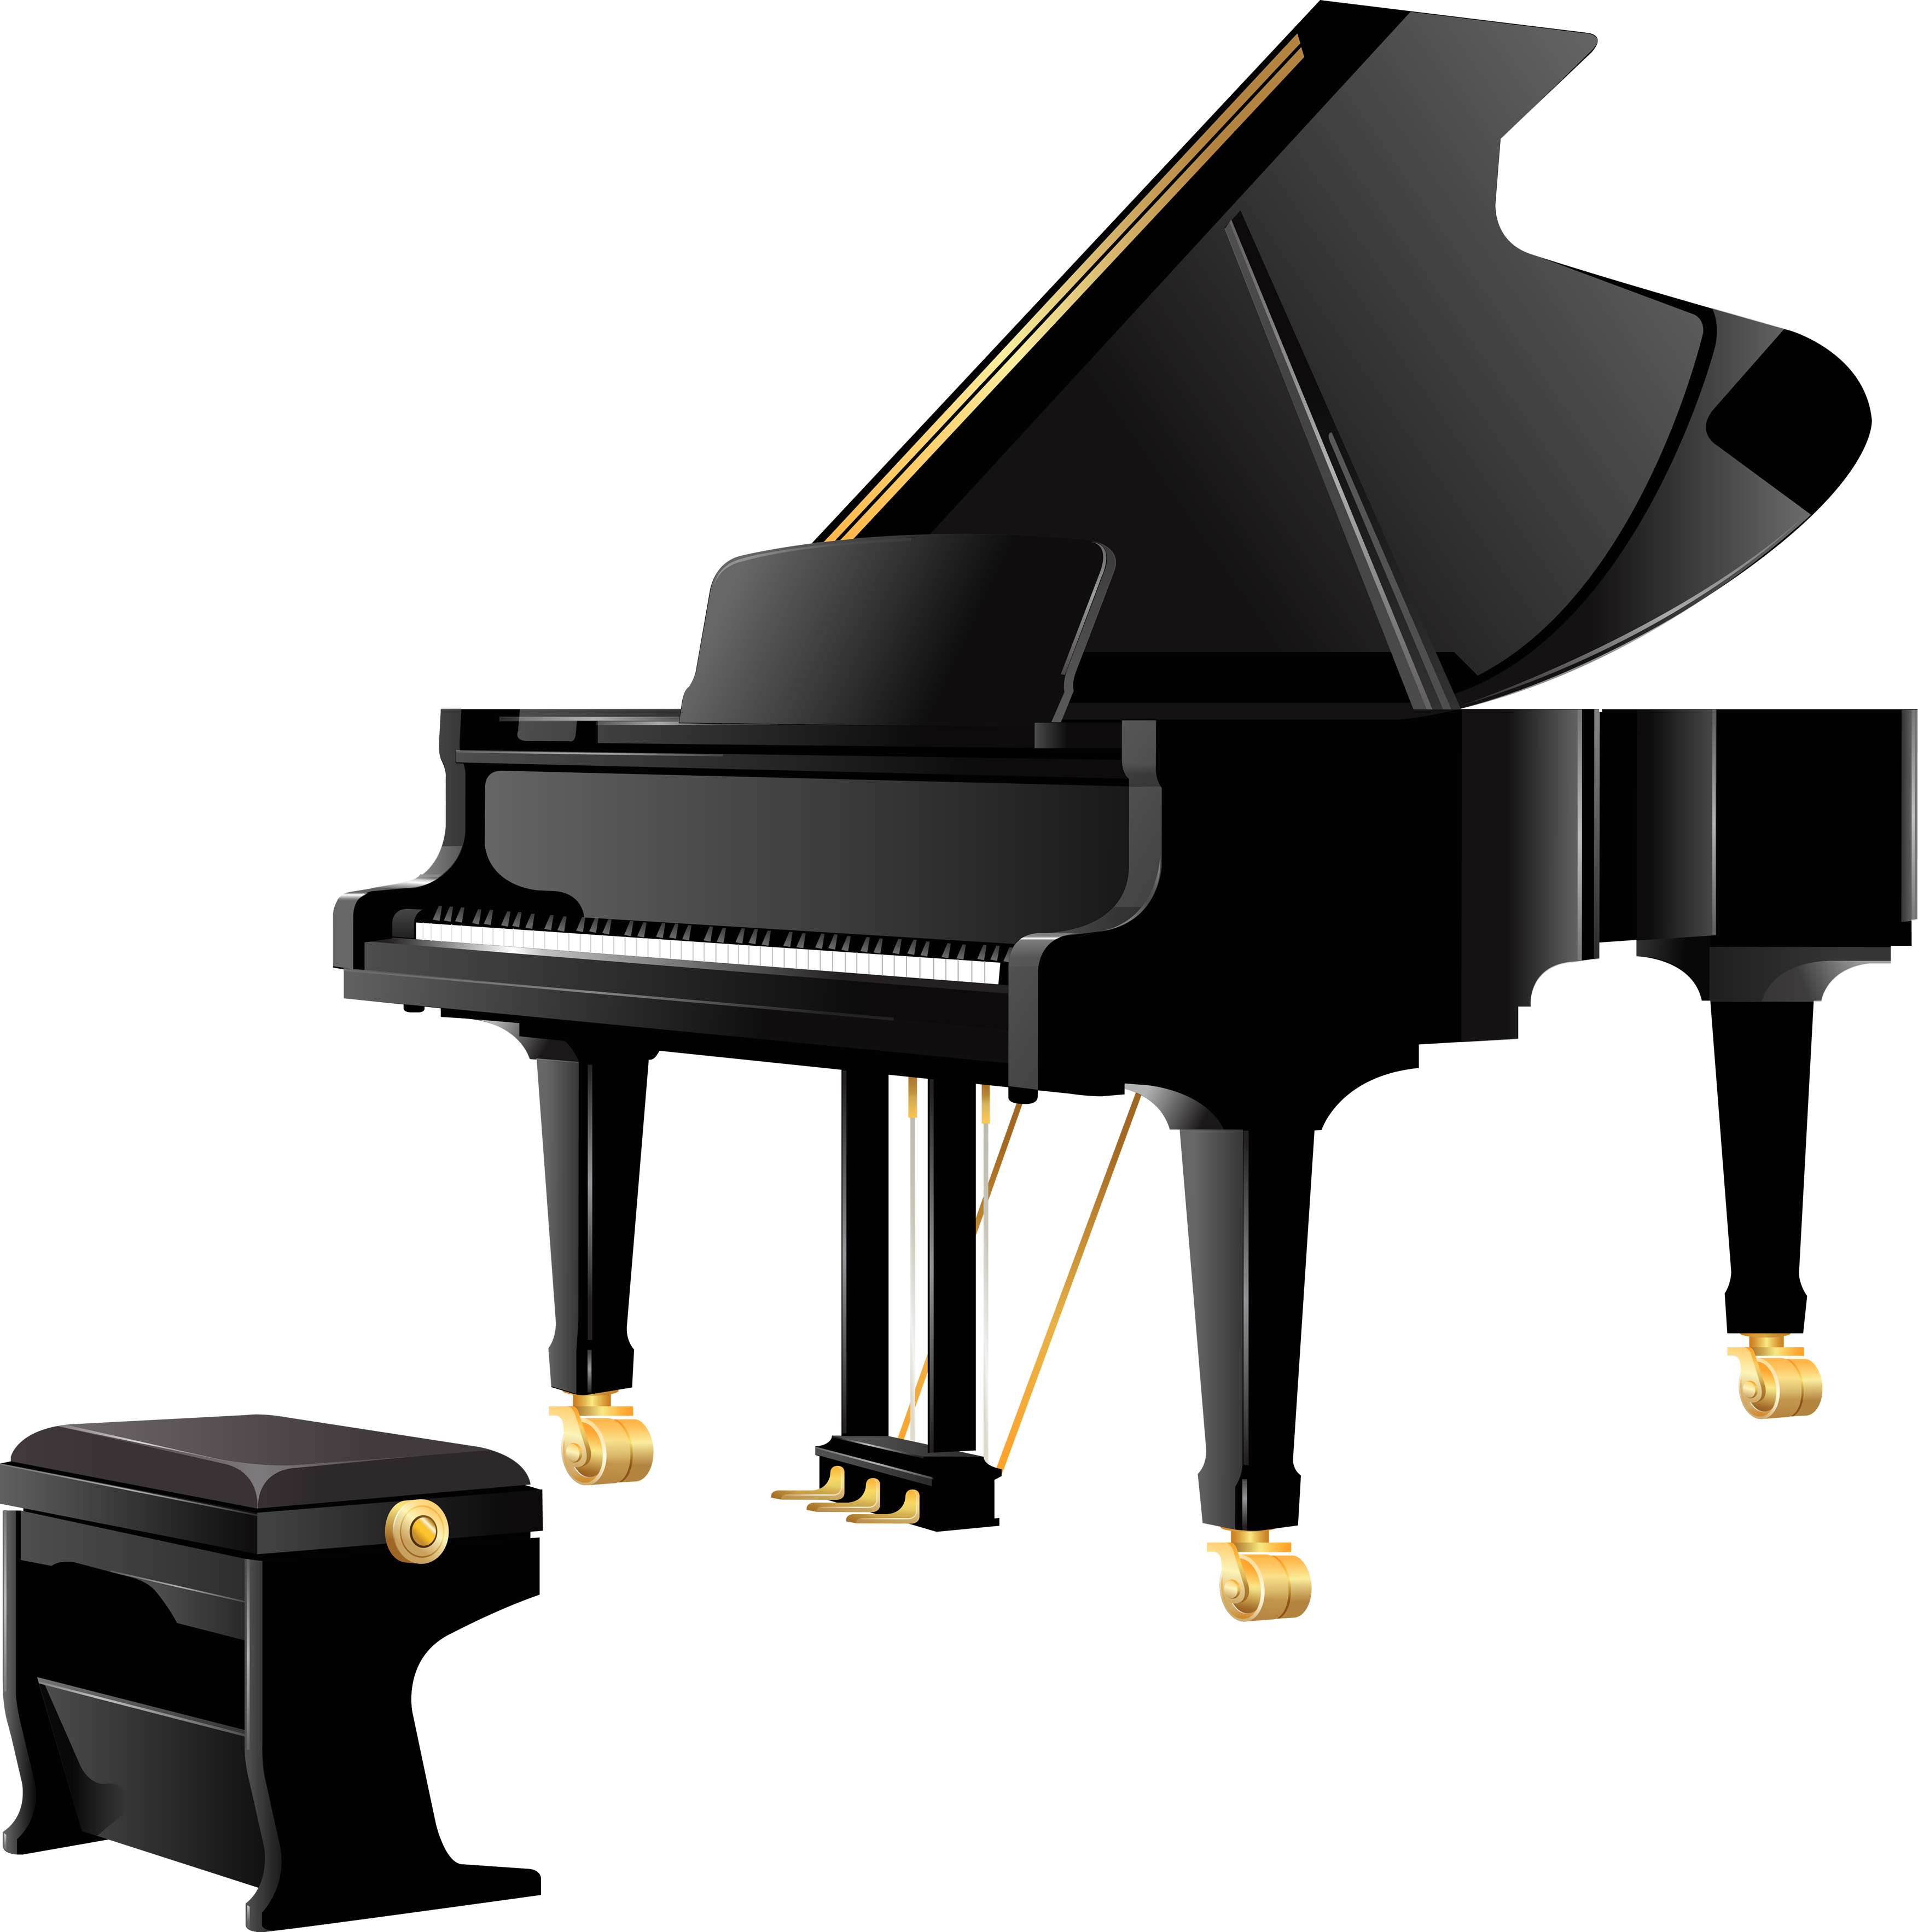 Piano clipart upright piano. Png image free download